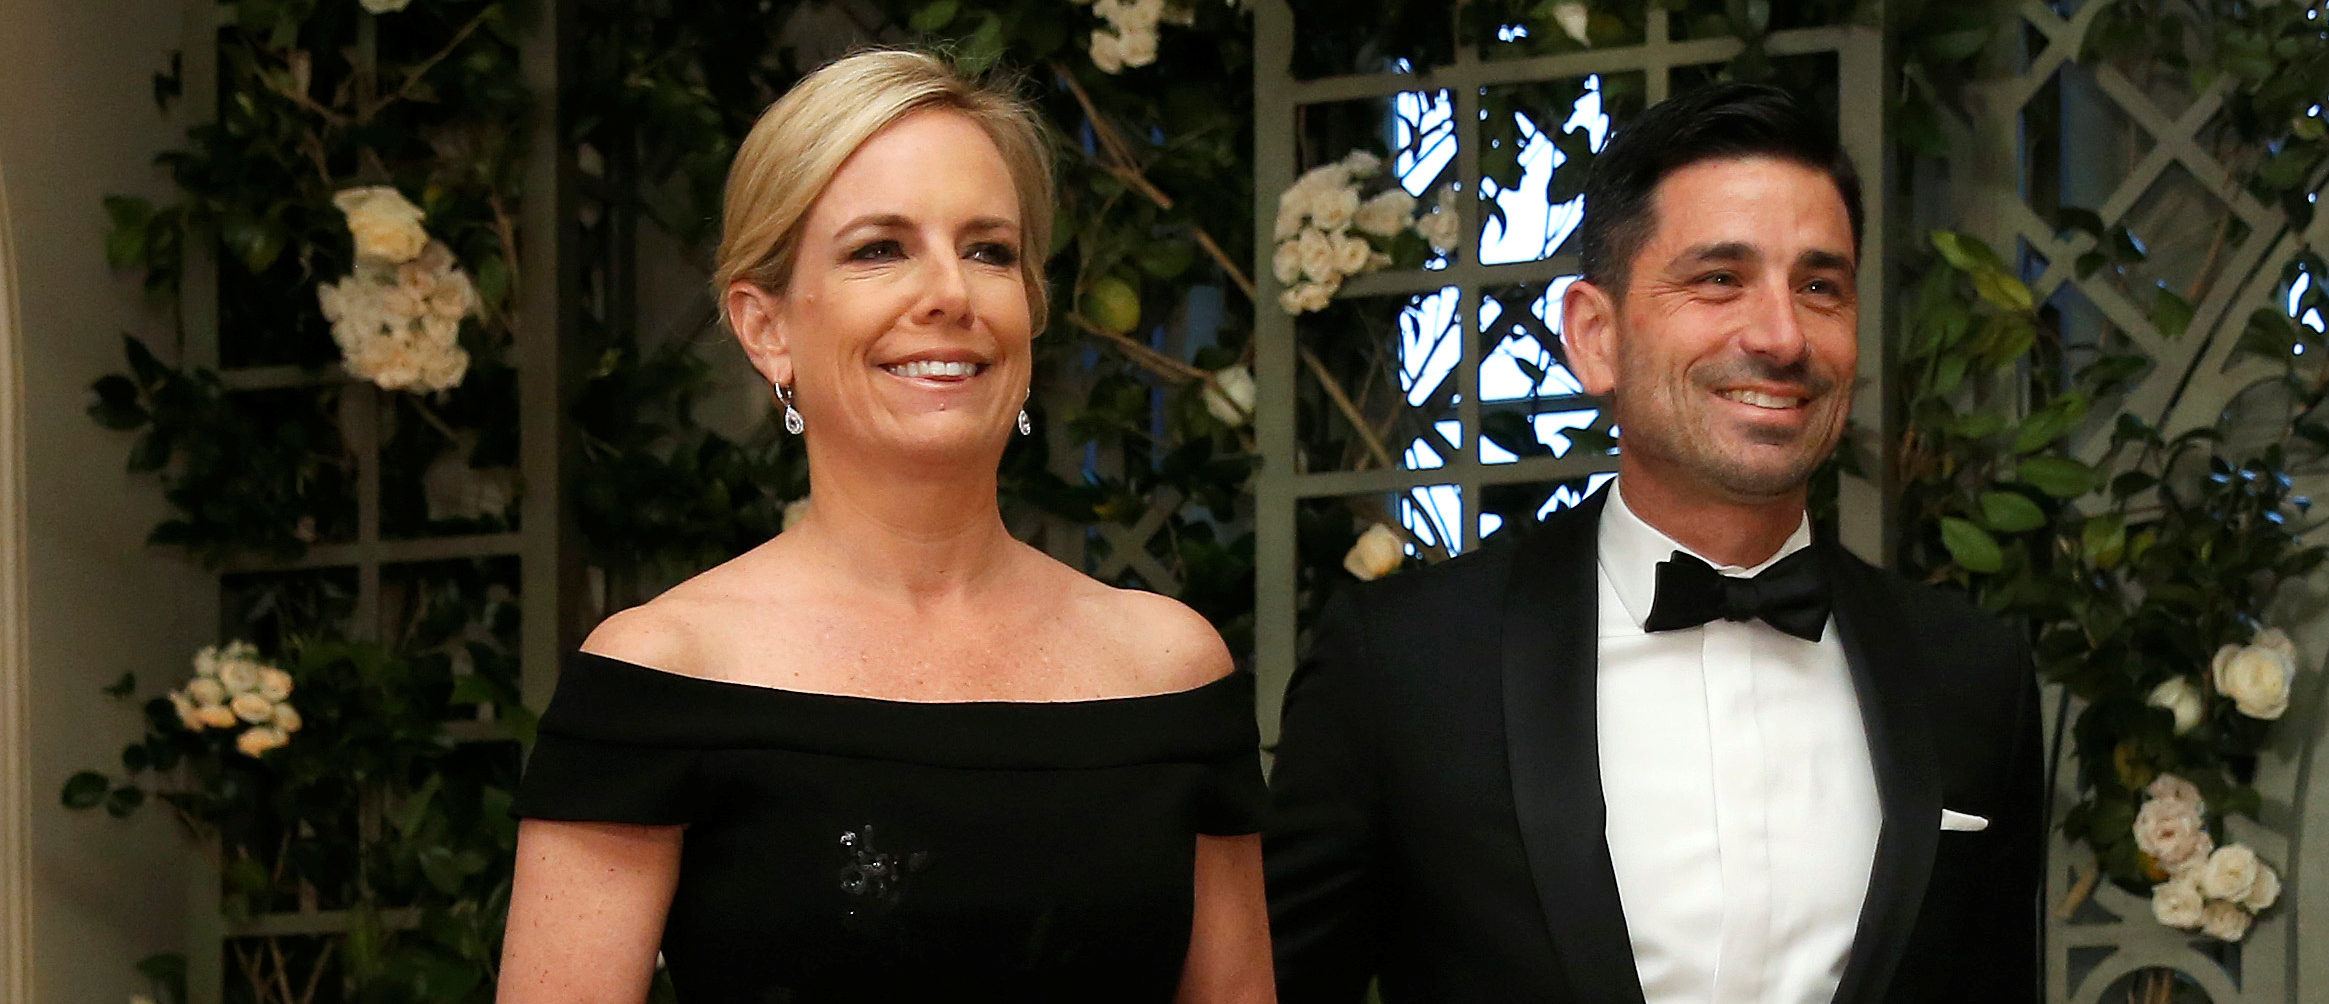 U.S. Secretary of Homeland Security Kirstjen Nielsen and Chad Wolf arrive for the State Dinner in honor of French President Emmanuel Macron at the White House in Washington